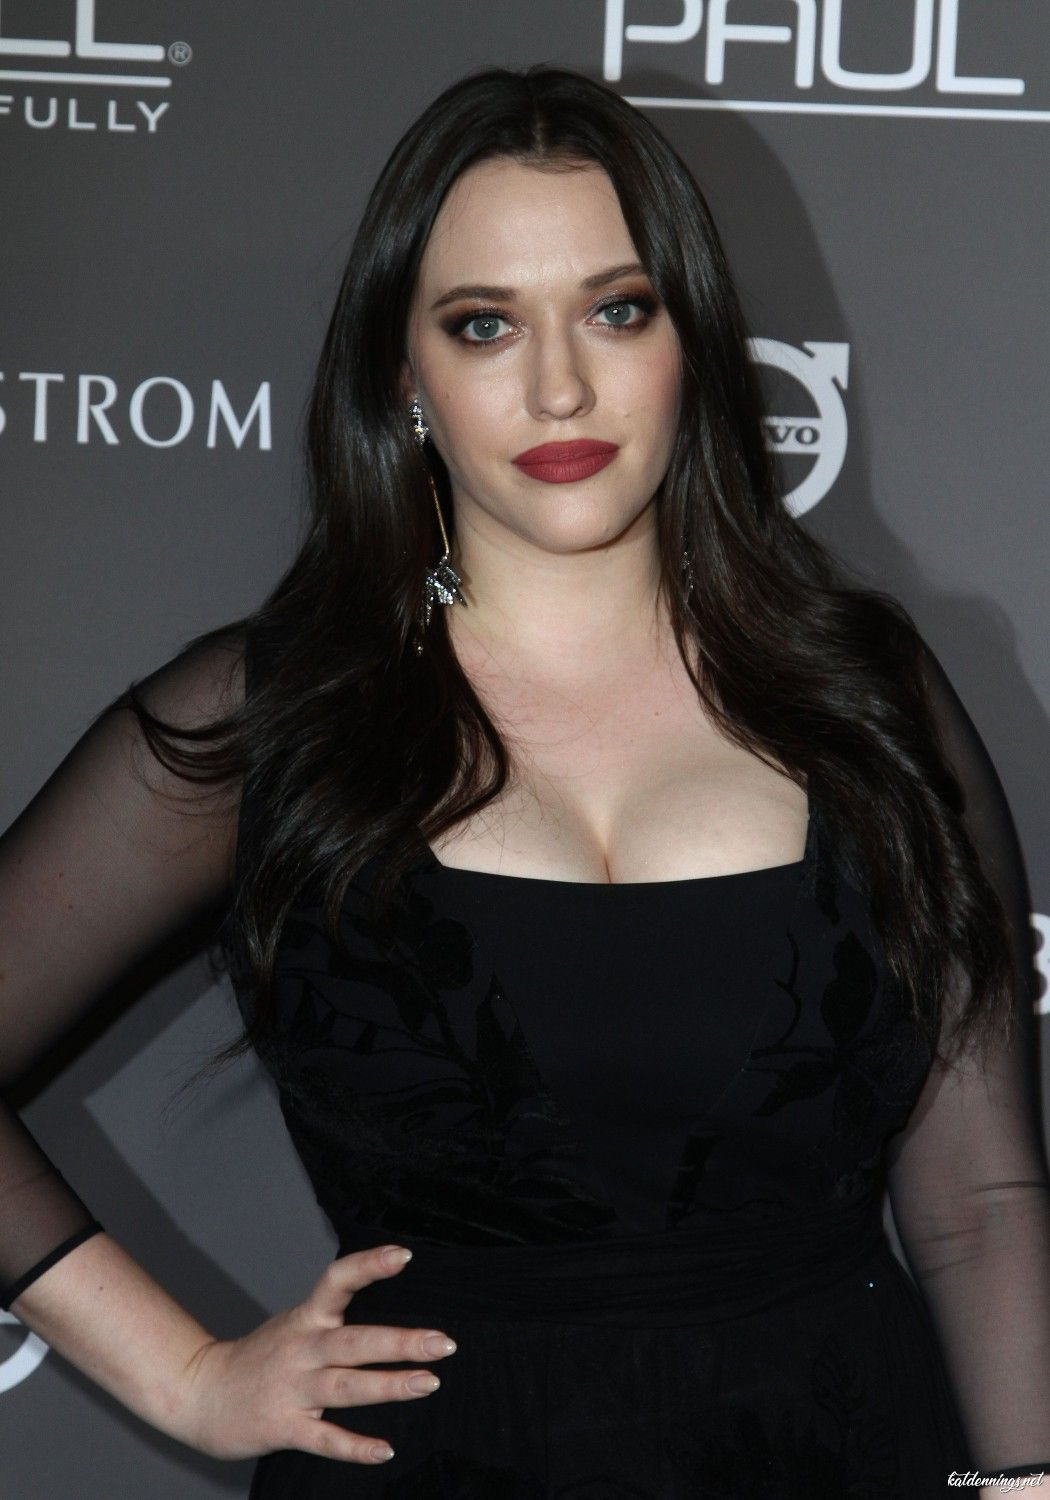 2019 Kat Dennings nudes (99 photo), Topless, Sideboobs, Selfie, legs 2018